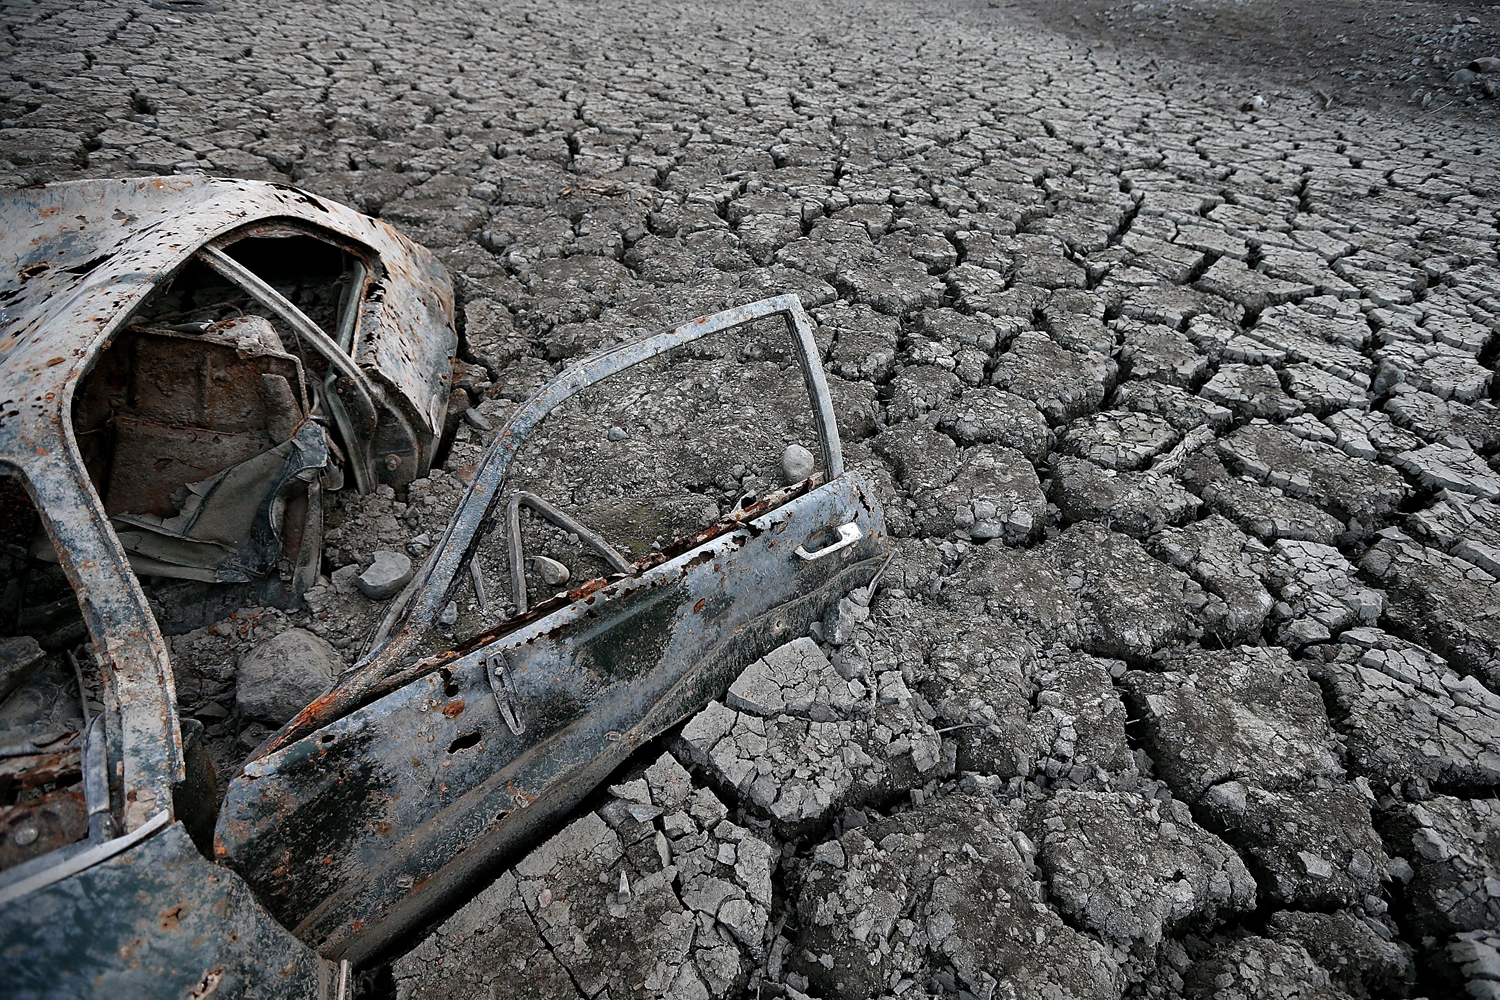 Jan. 28, 2014.  A car sits in dried and cracked earth of what was the bottom of the Almaden Reservoir in San Jose, California.